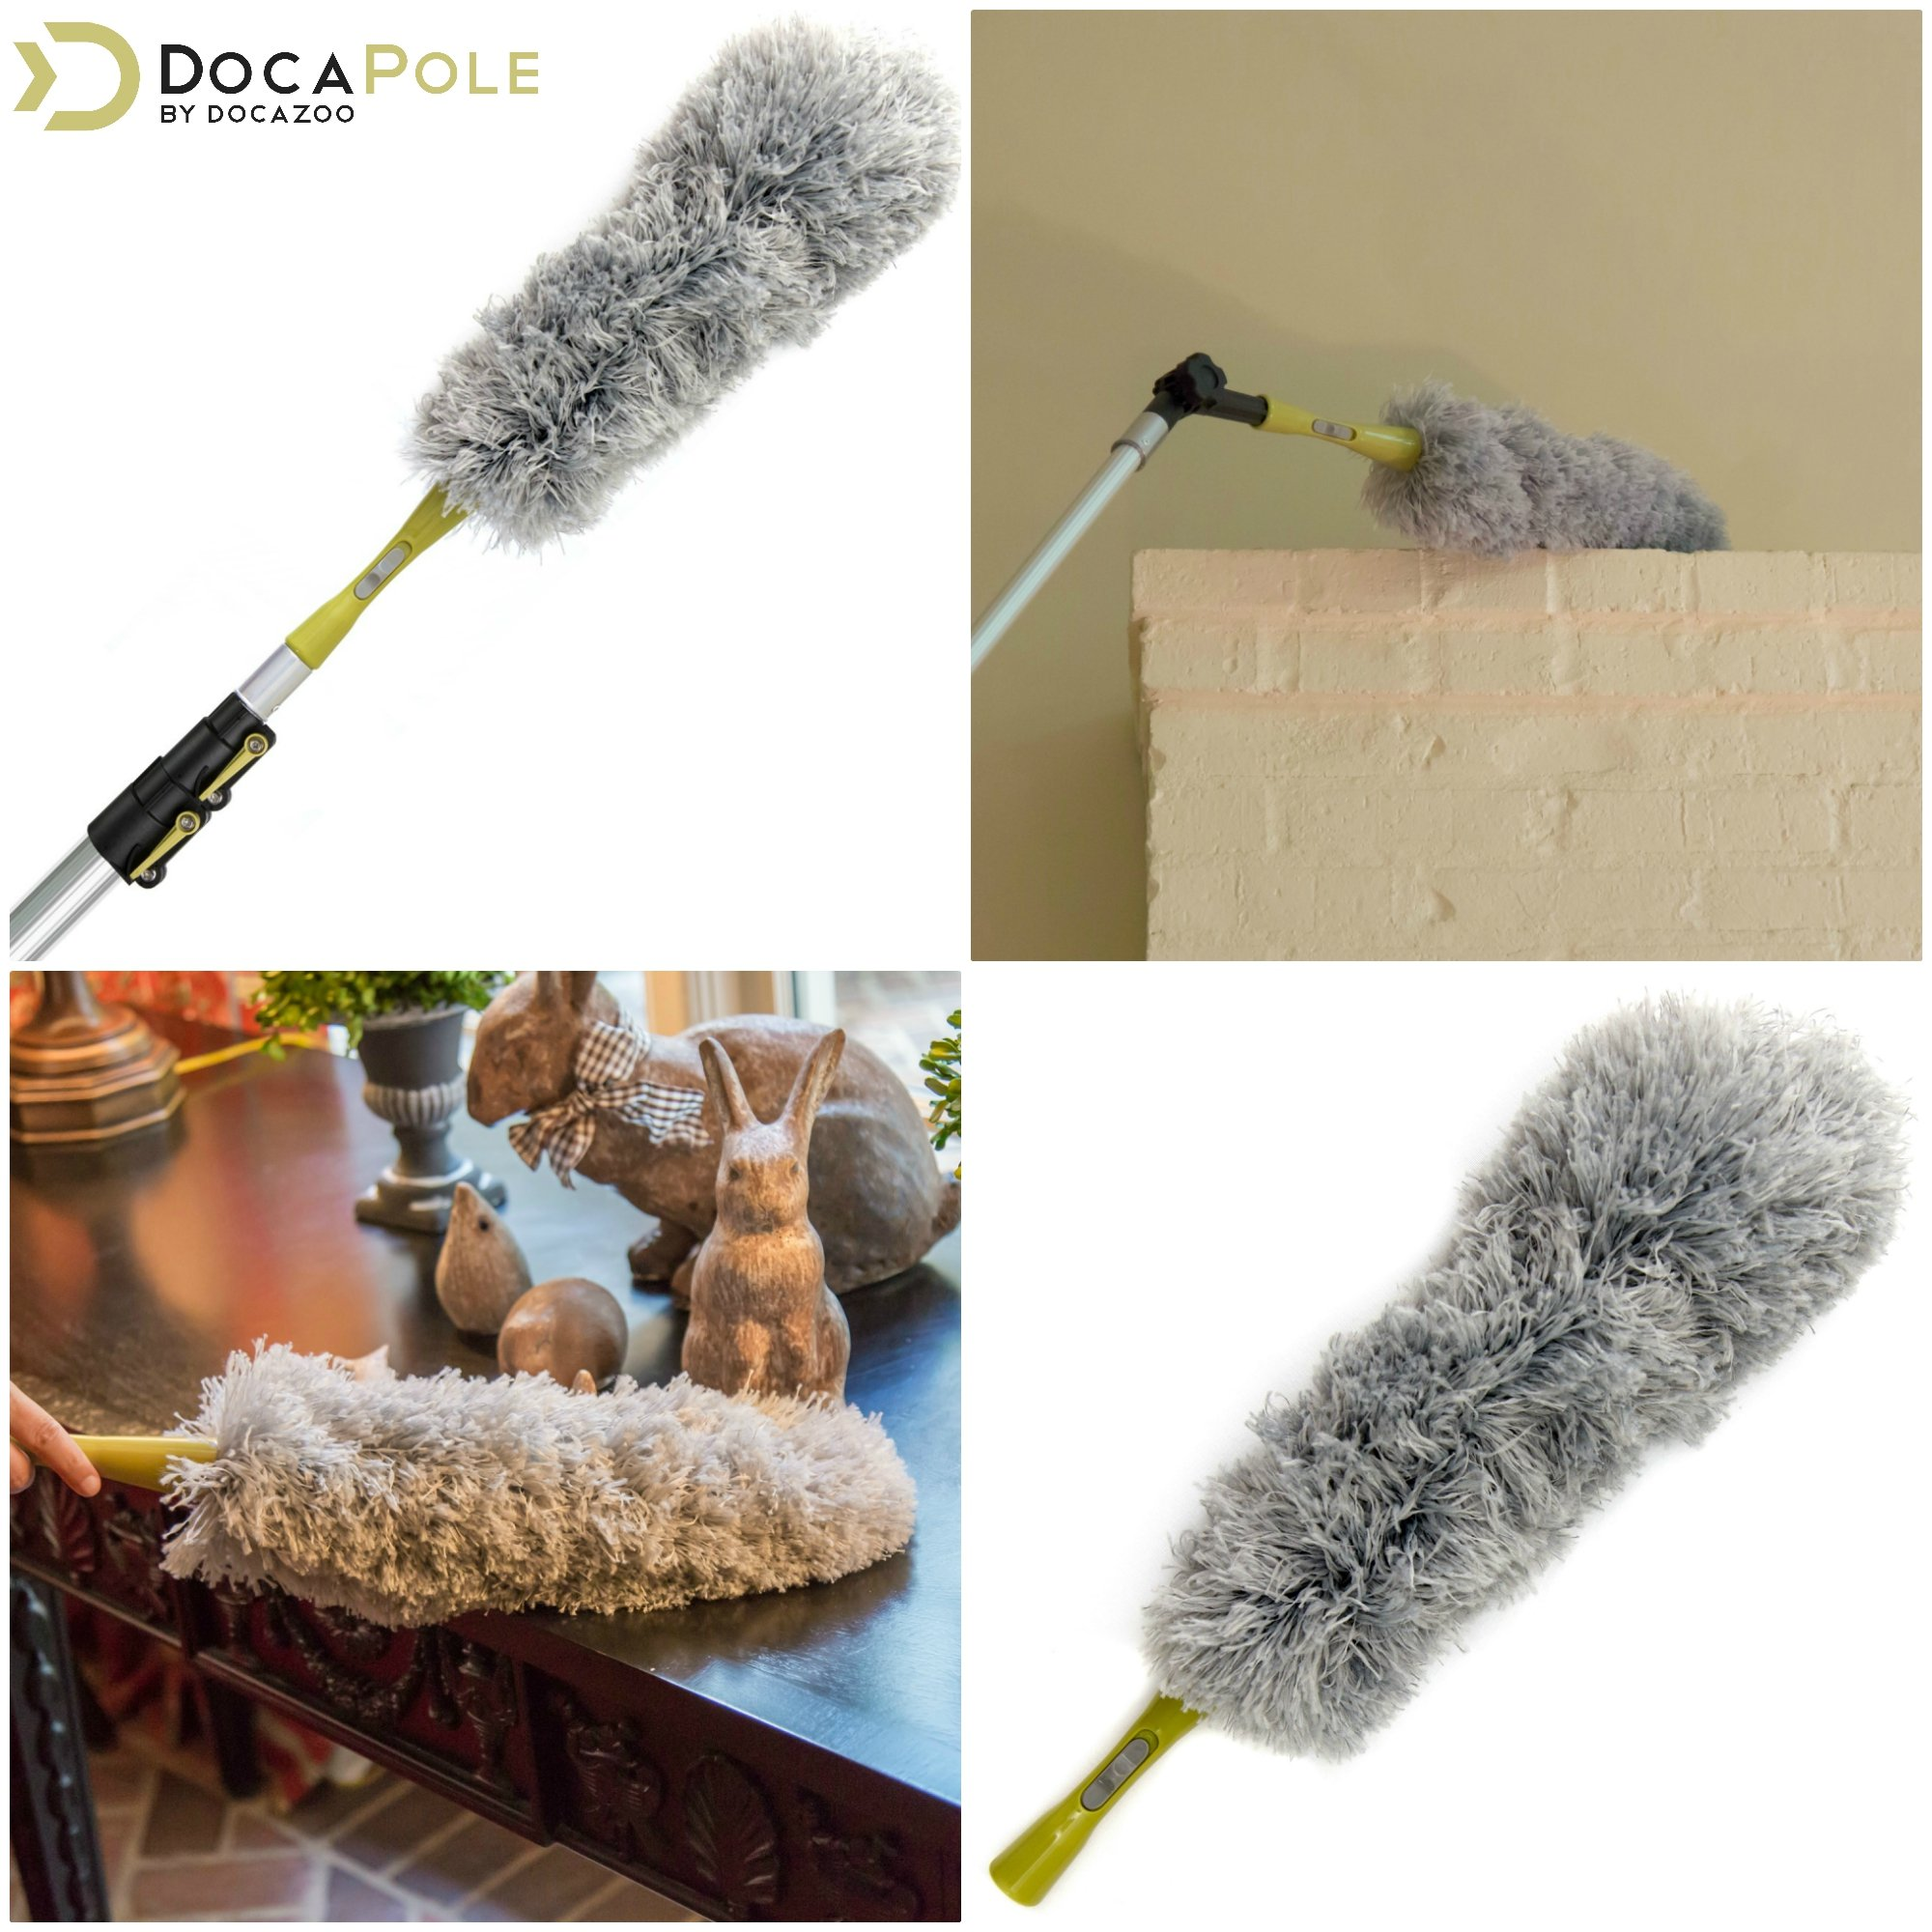 DocaPole Dusting Kit for Extension Pole or by Hand | Cleaning Kit Includes 3 Dusting Attachments | Cobweb Duster | Microfiber Feather Duster | Flexible Chenille Ceiling Fan Duster by DOCAZOO (Image #6)